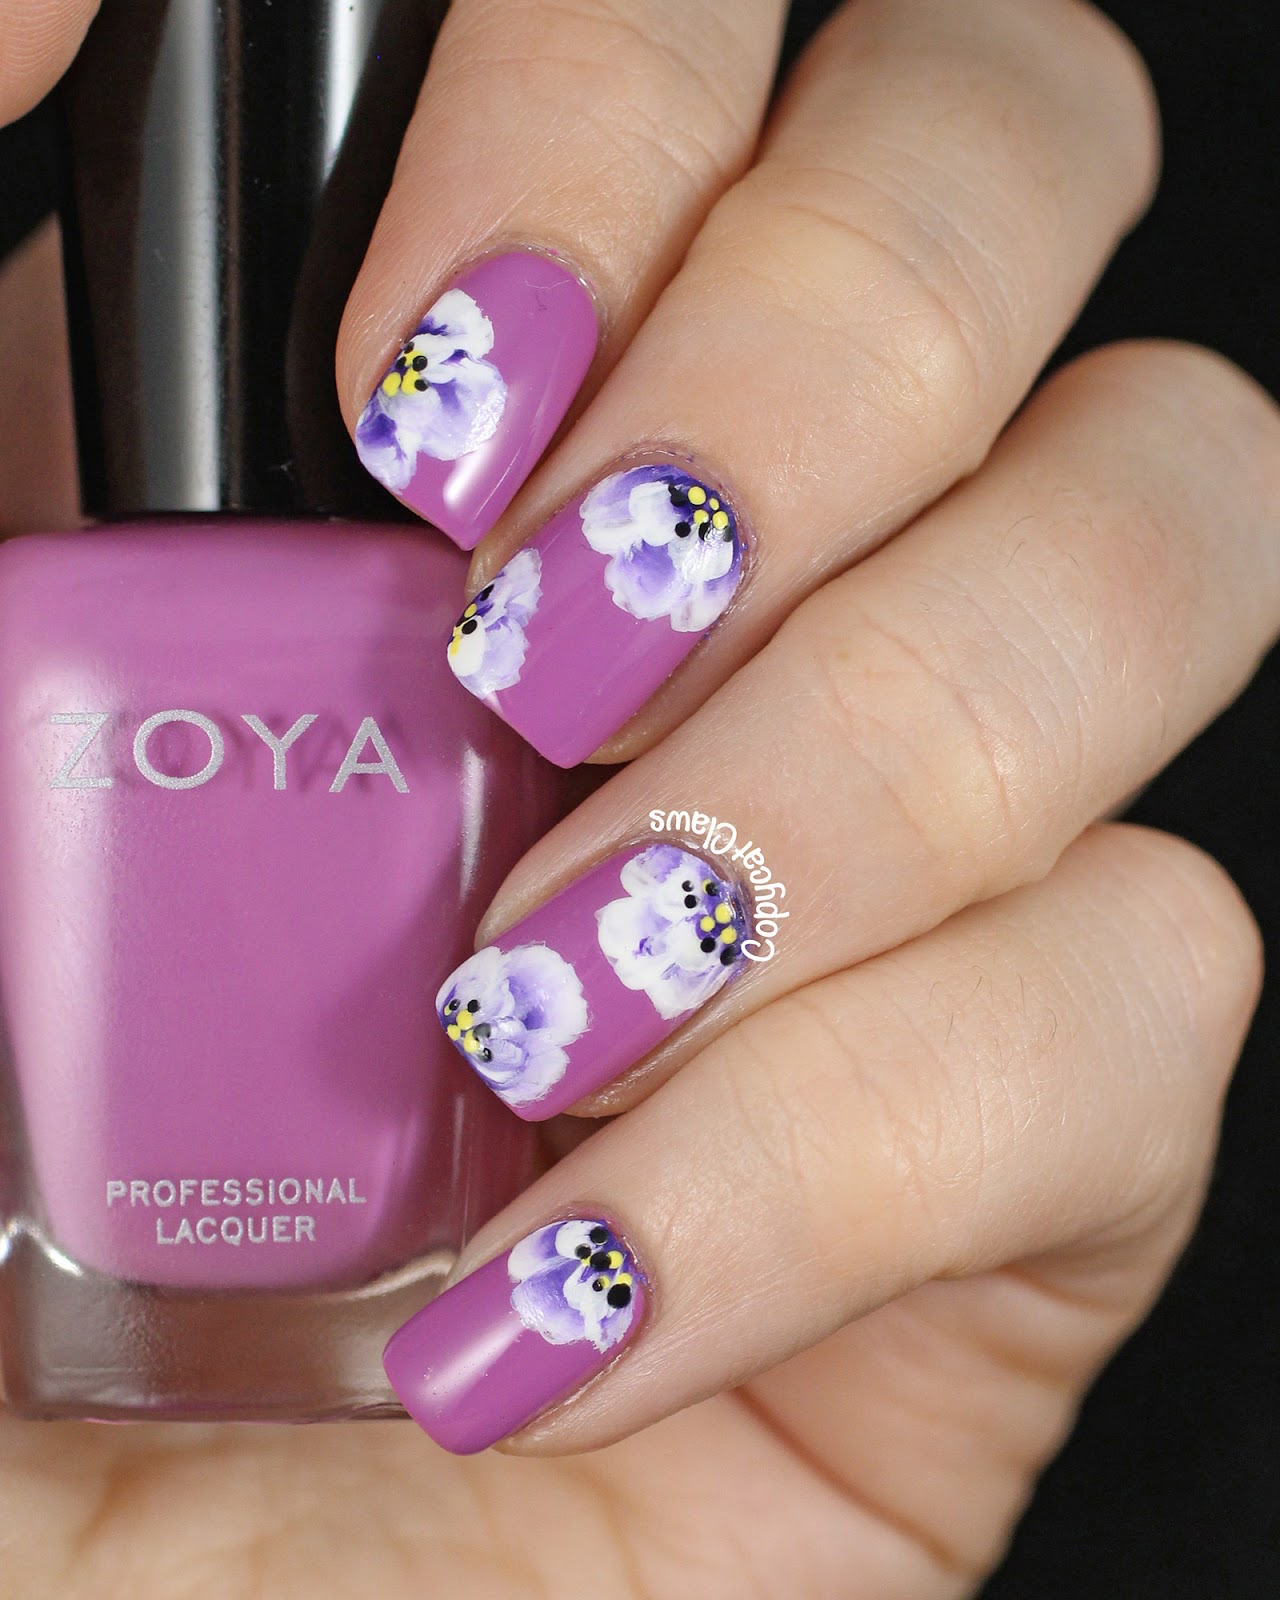 Ideas Of Nail Art: Floral Manicures For Spring And